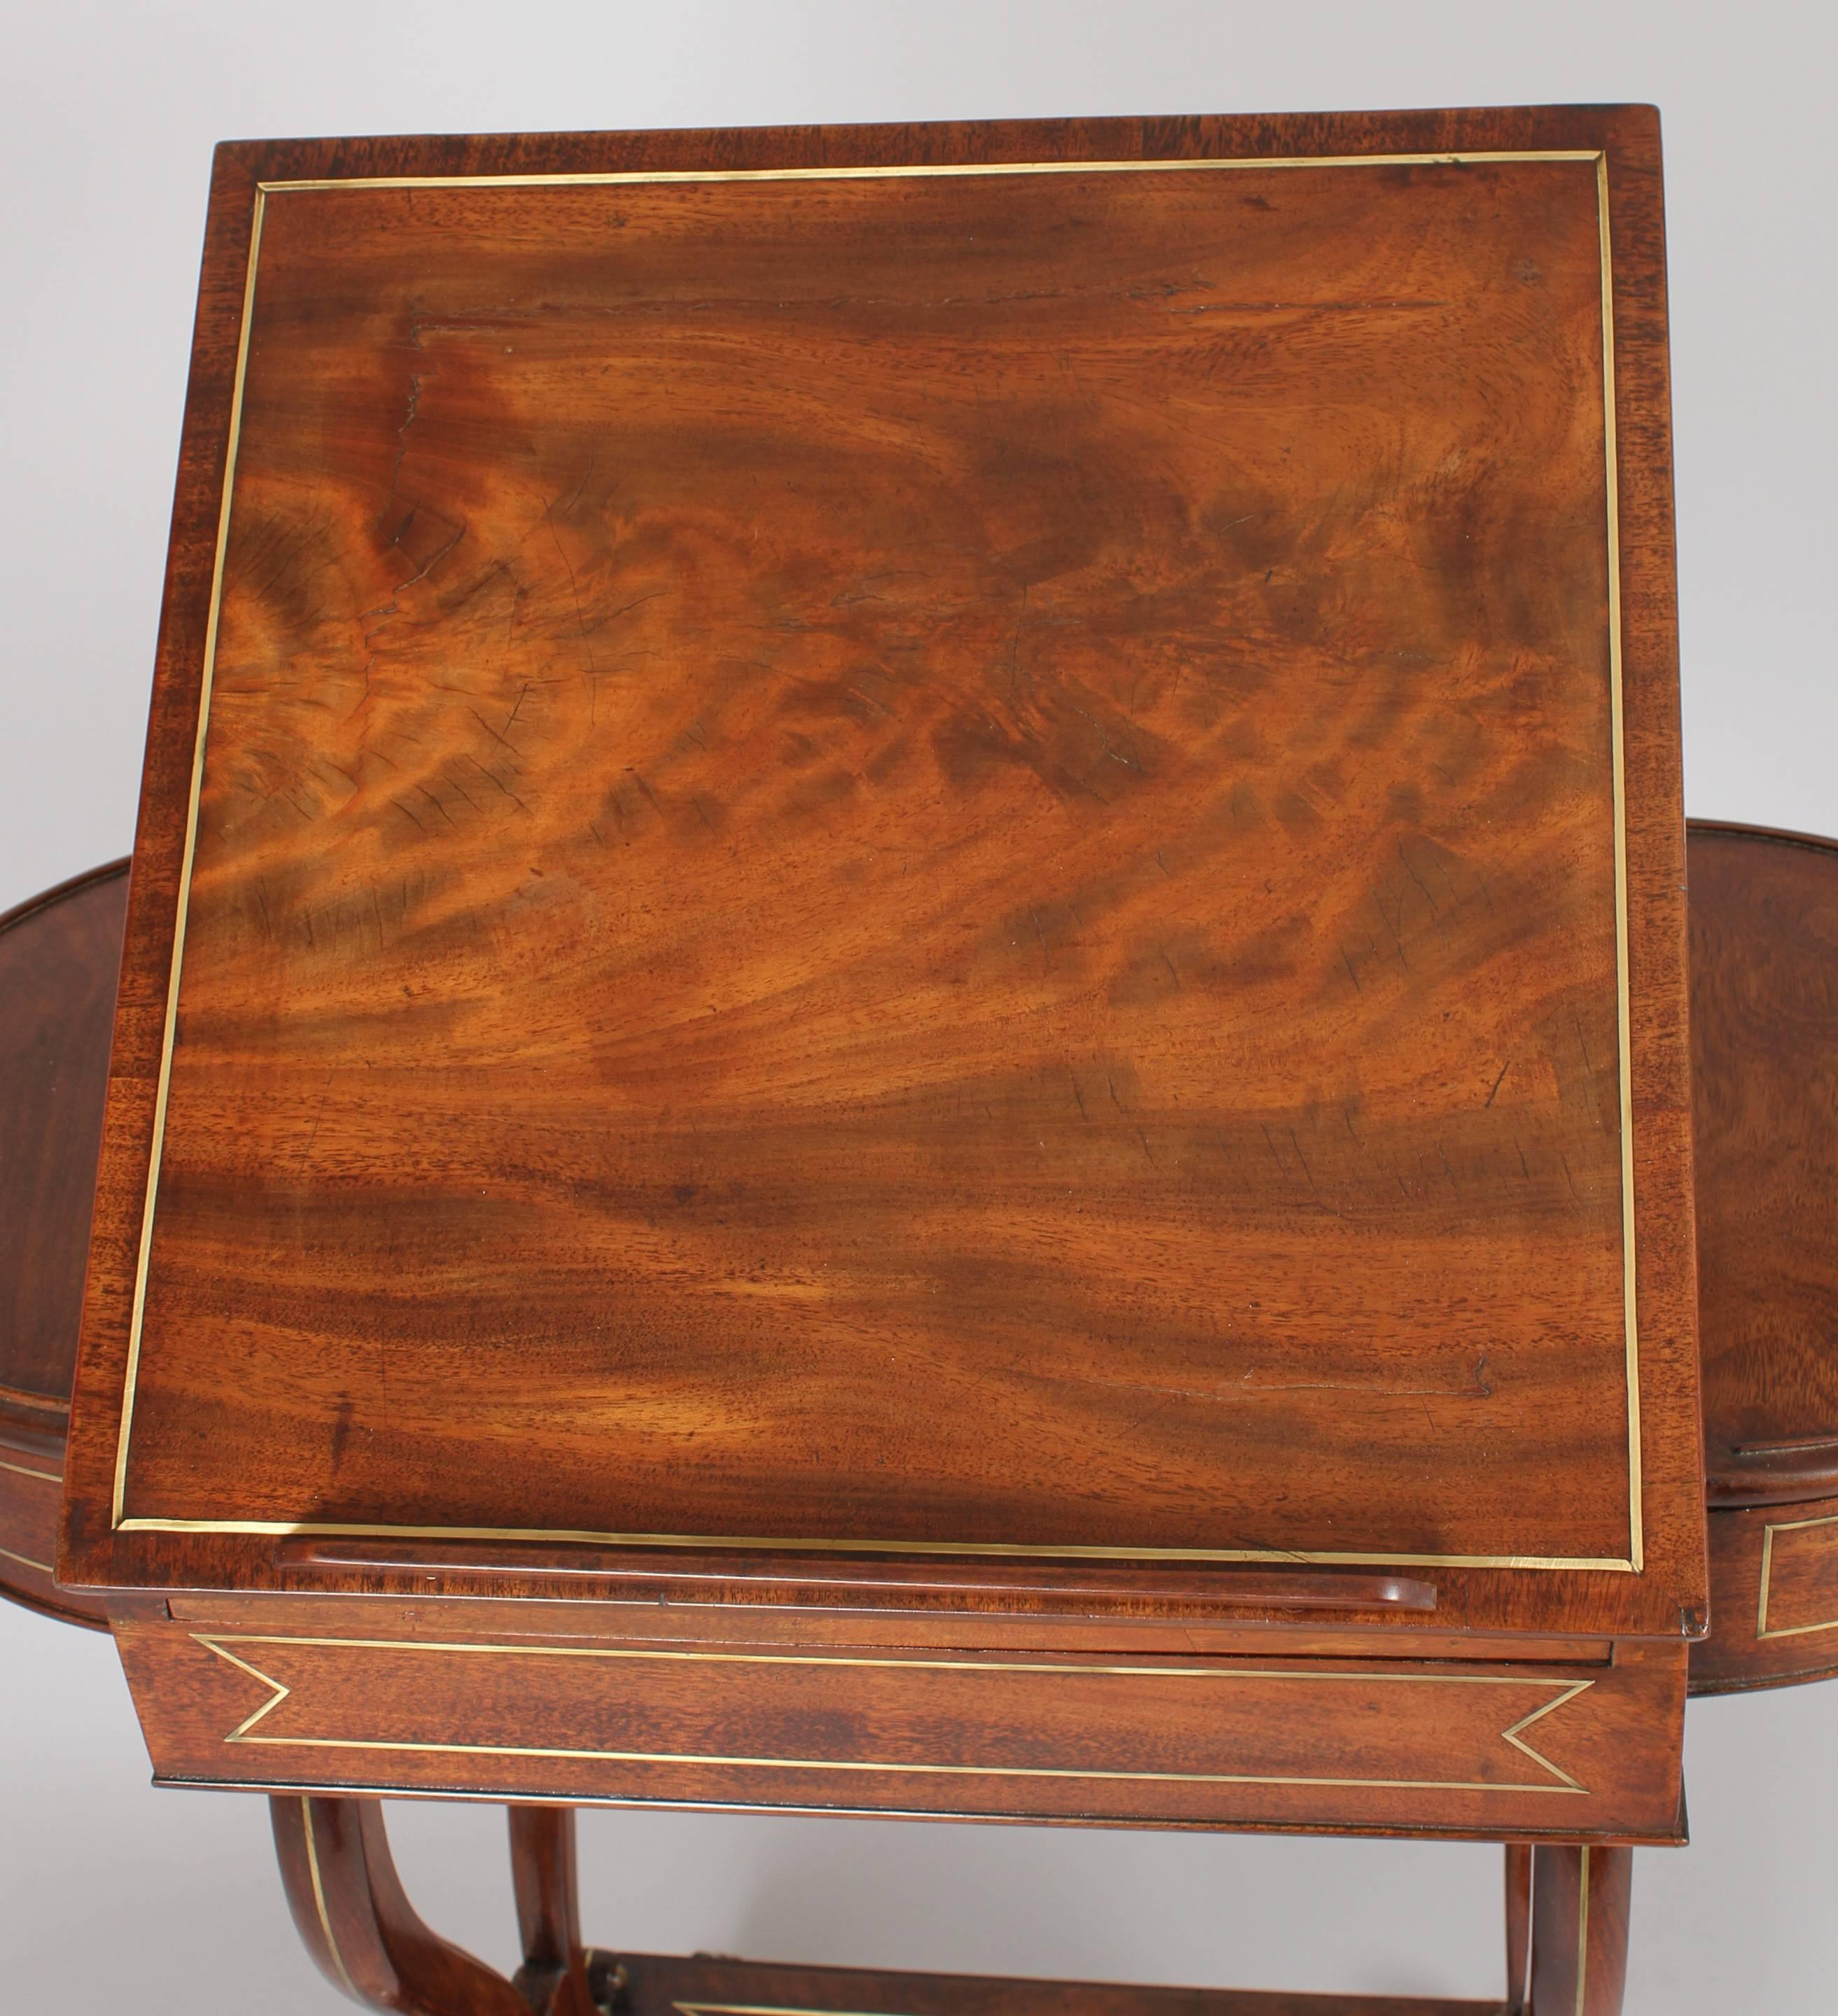 Regency Mahogany and Brass Inlaid Work-Table